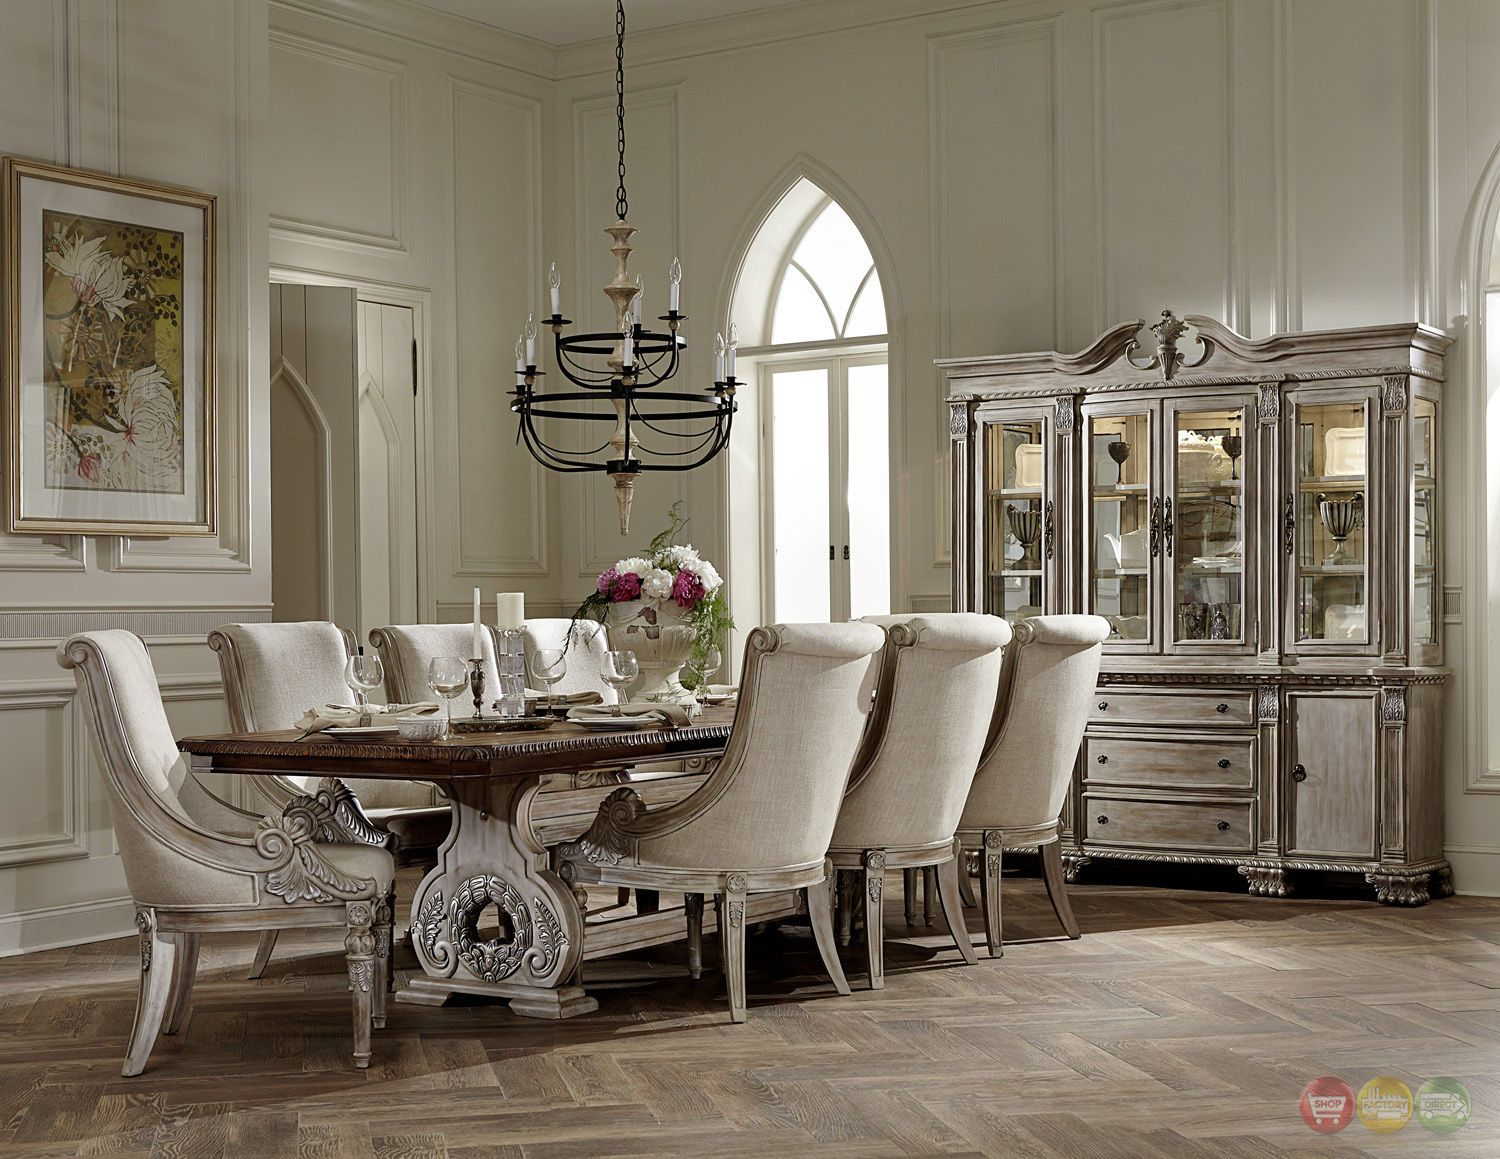 Orleans Ii White Wash Traditional 7Pc Formal Dining Room Furniture Endearing Formal Dining Room Set Inspiration